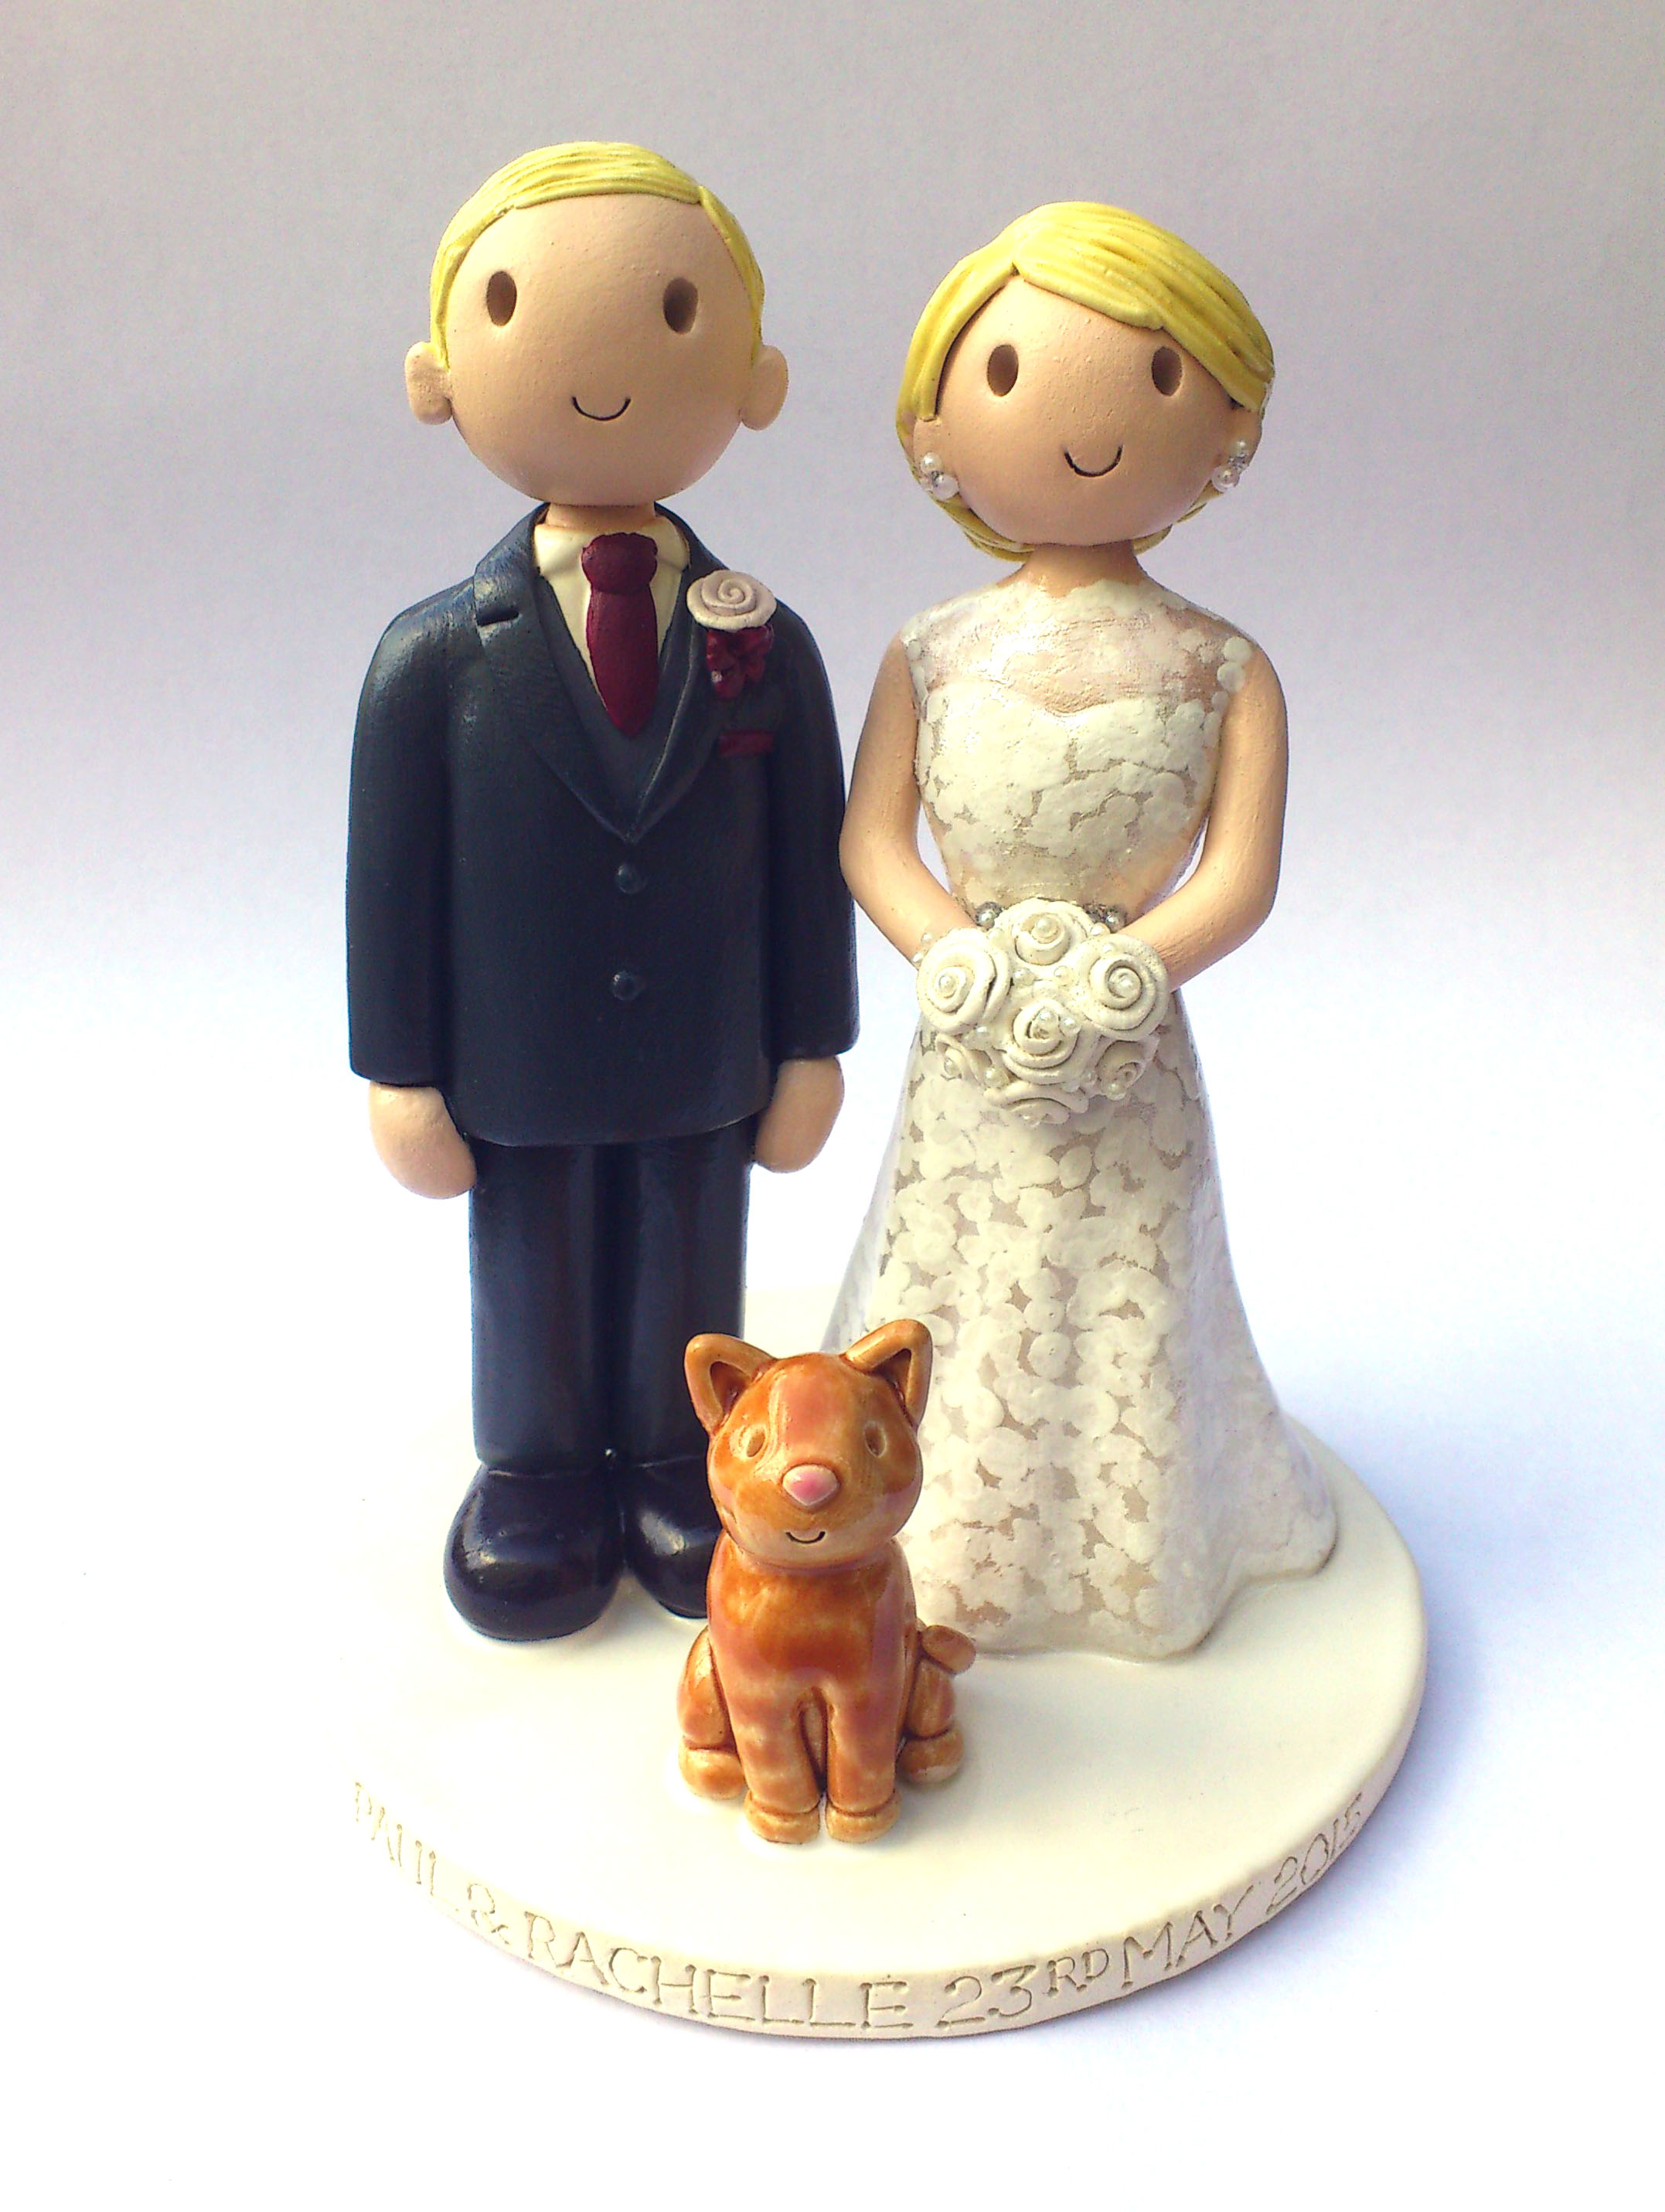 ethnic wedding cake toppers uk wedding cake toppers gallery examples of toppers we 14042